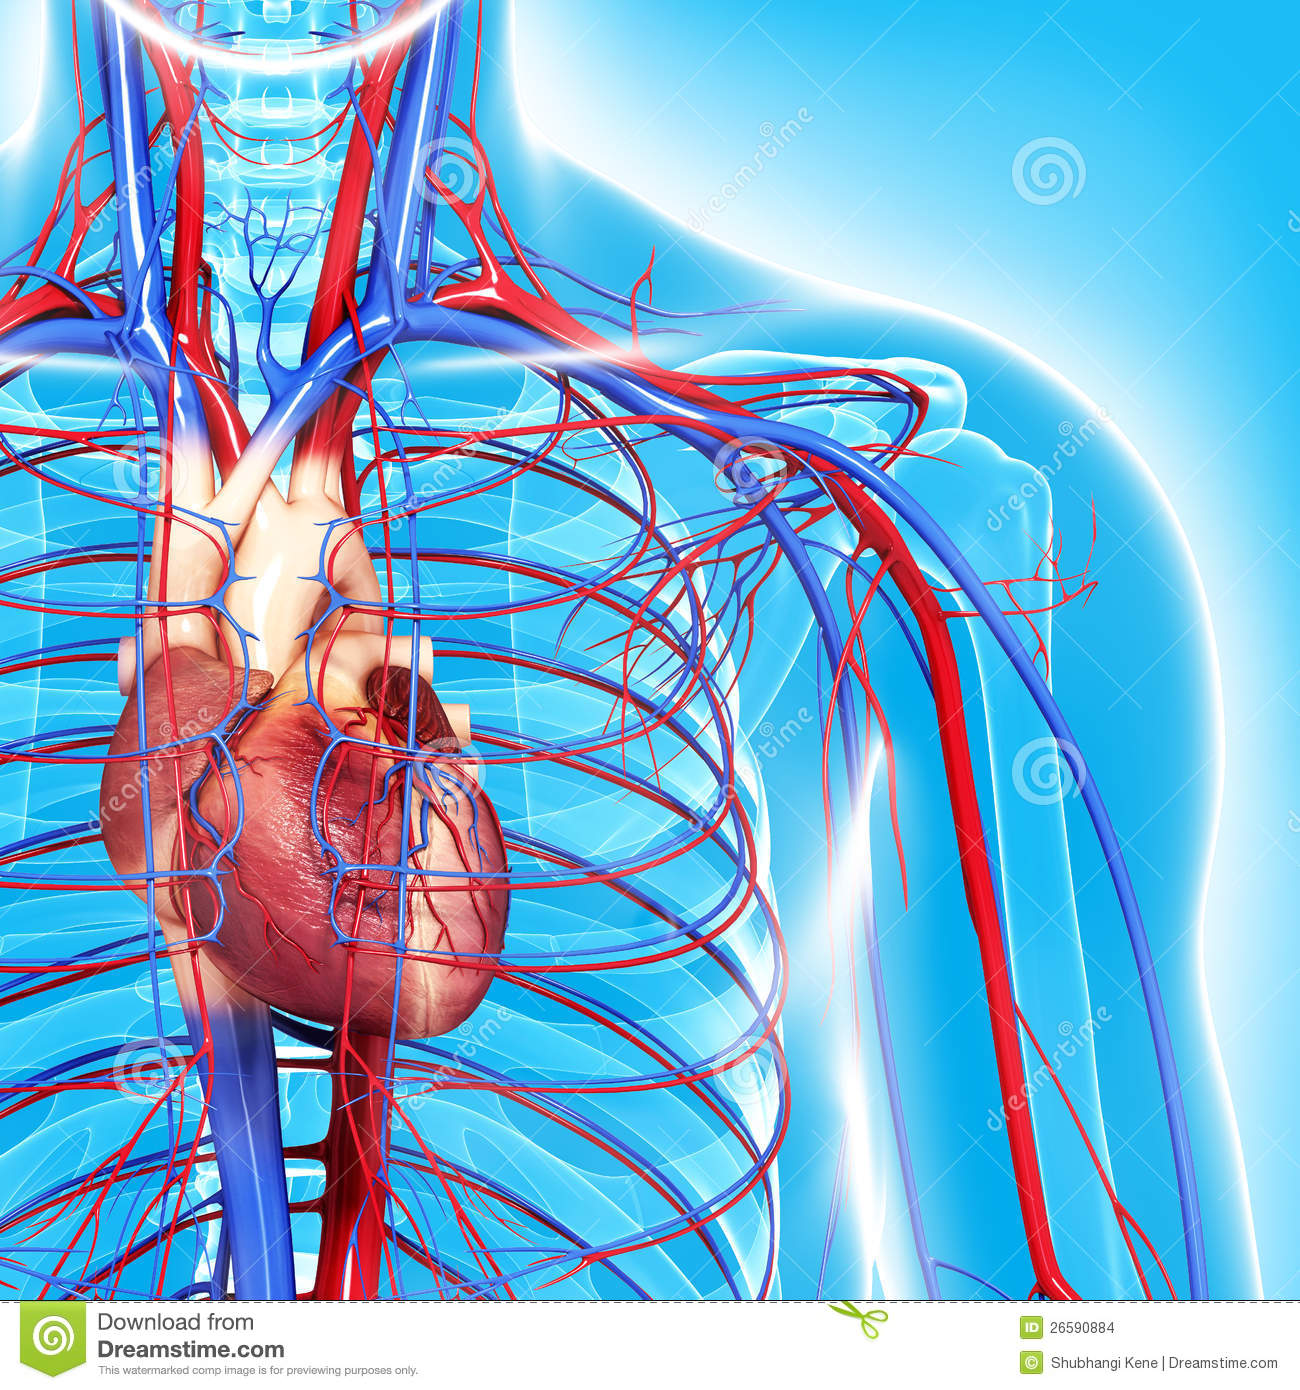 Content Section 1 also Stock Vector Illustration Of Stylized Organs Inside The Human Body For Medical Purposes in addition Open Circulatory System Diagram in addition Top 10 Simple Dietary Swaps Health as well Circulatory System Heart Clipart. on simple cardiovascular system